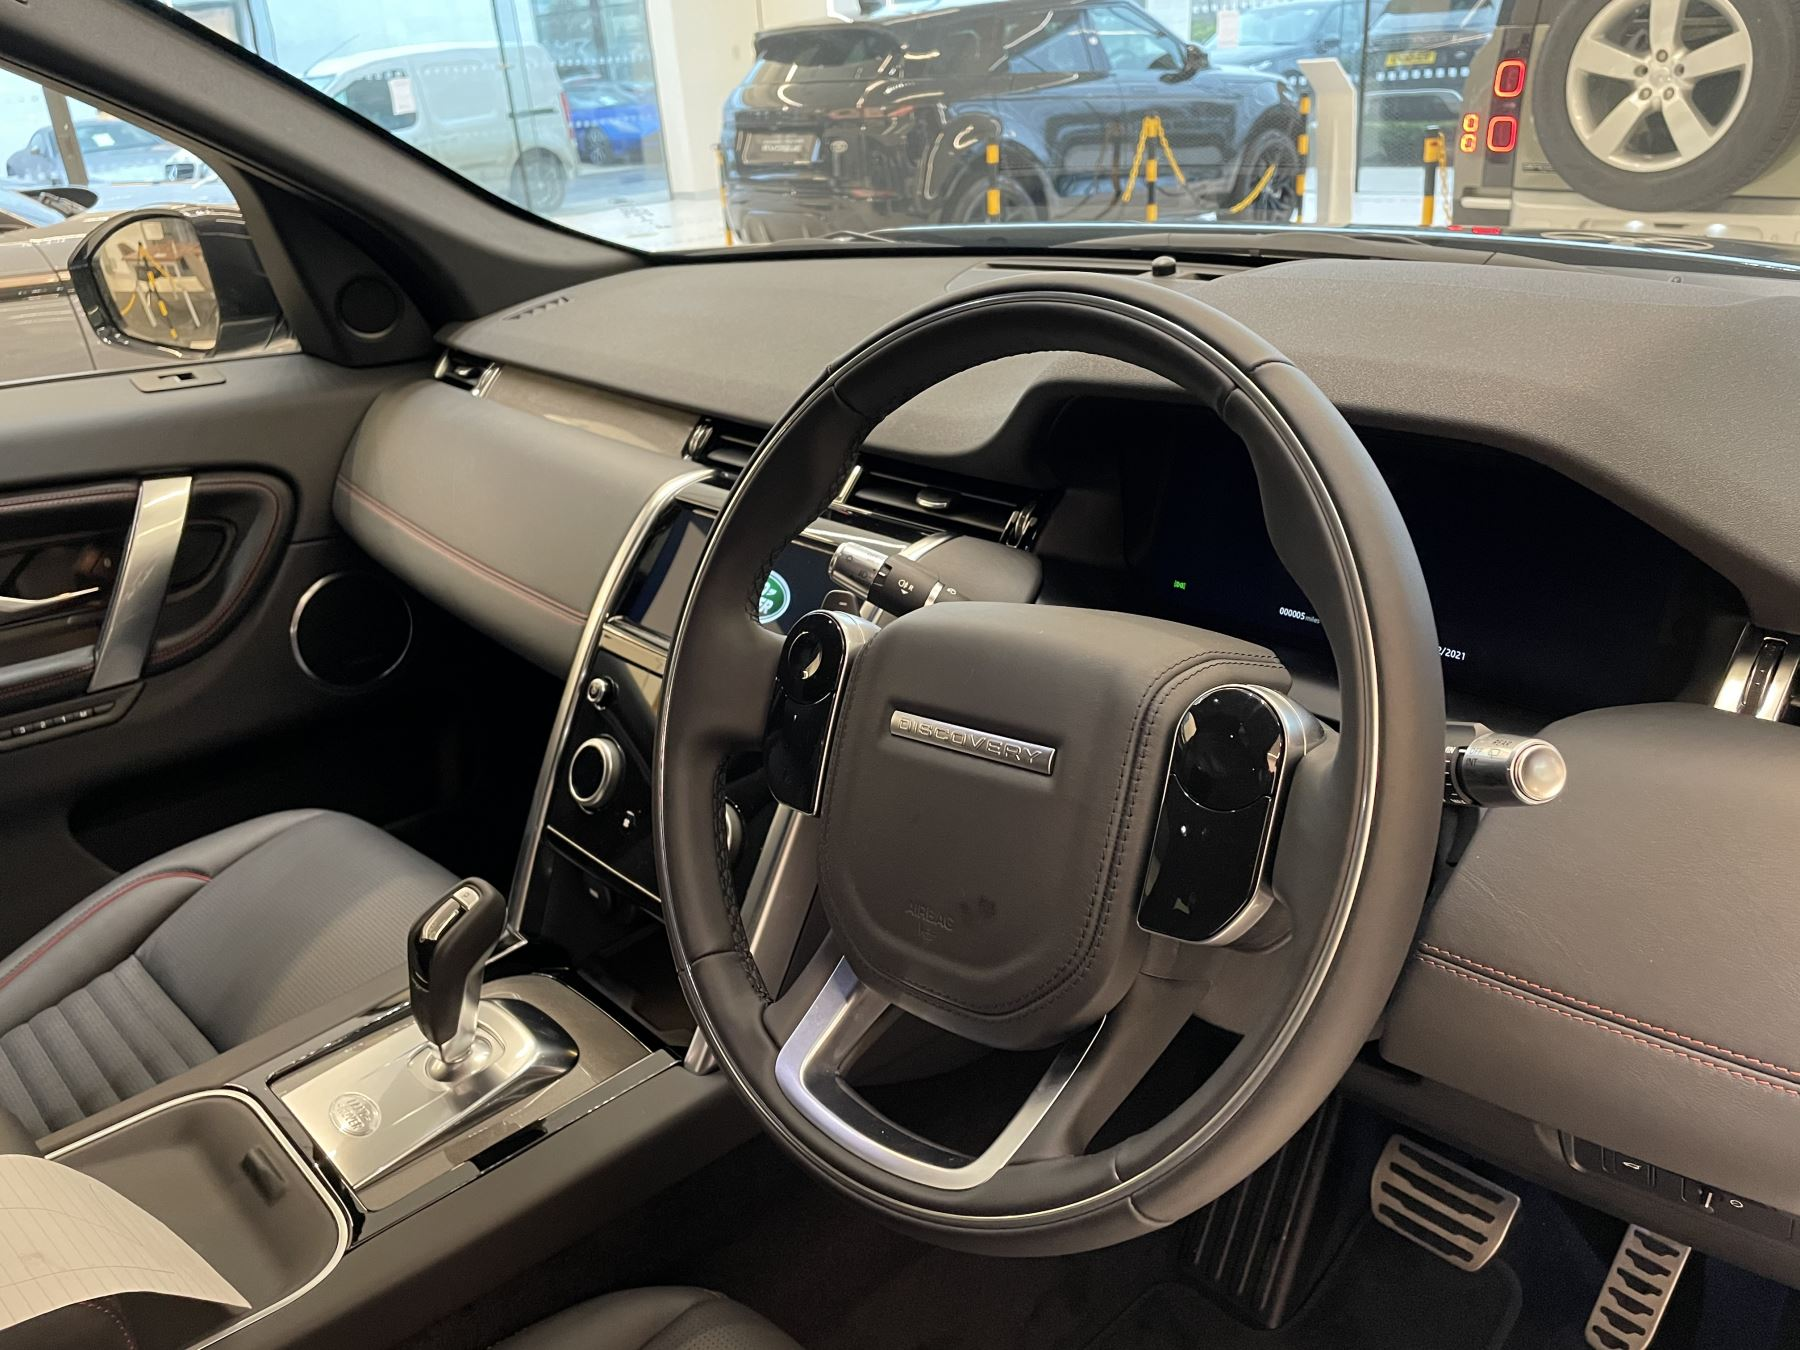 Land Rover Discovery Sport 2.0 P250 R-Dynamic HSE image 6